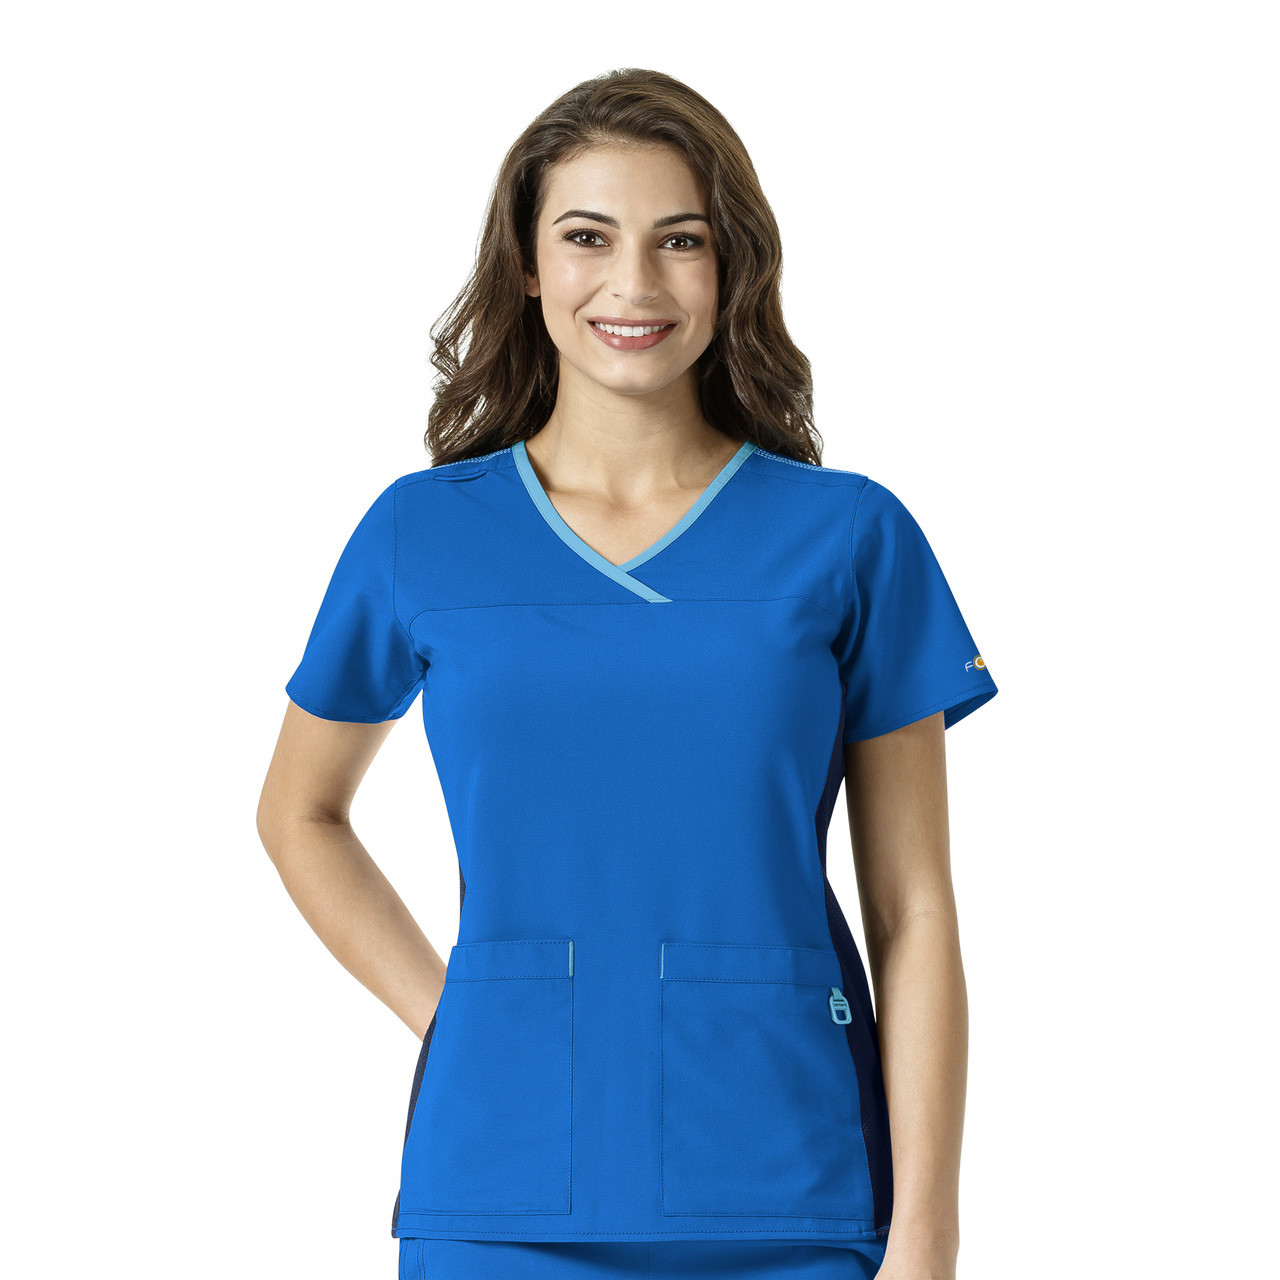 (C12510) Carhartt Cross-Flex Active Contrast Trim Y-neck Scrub Top